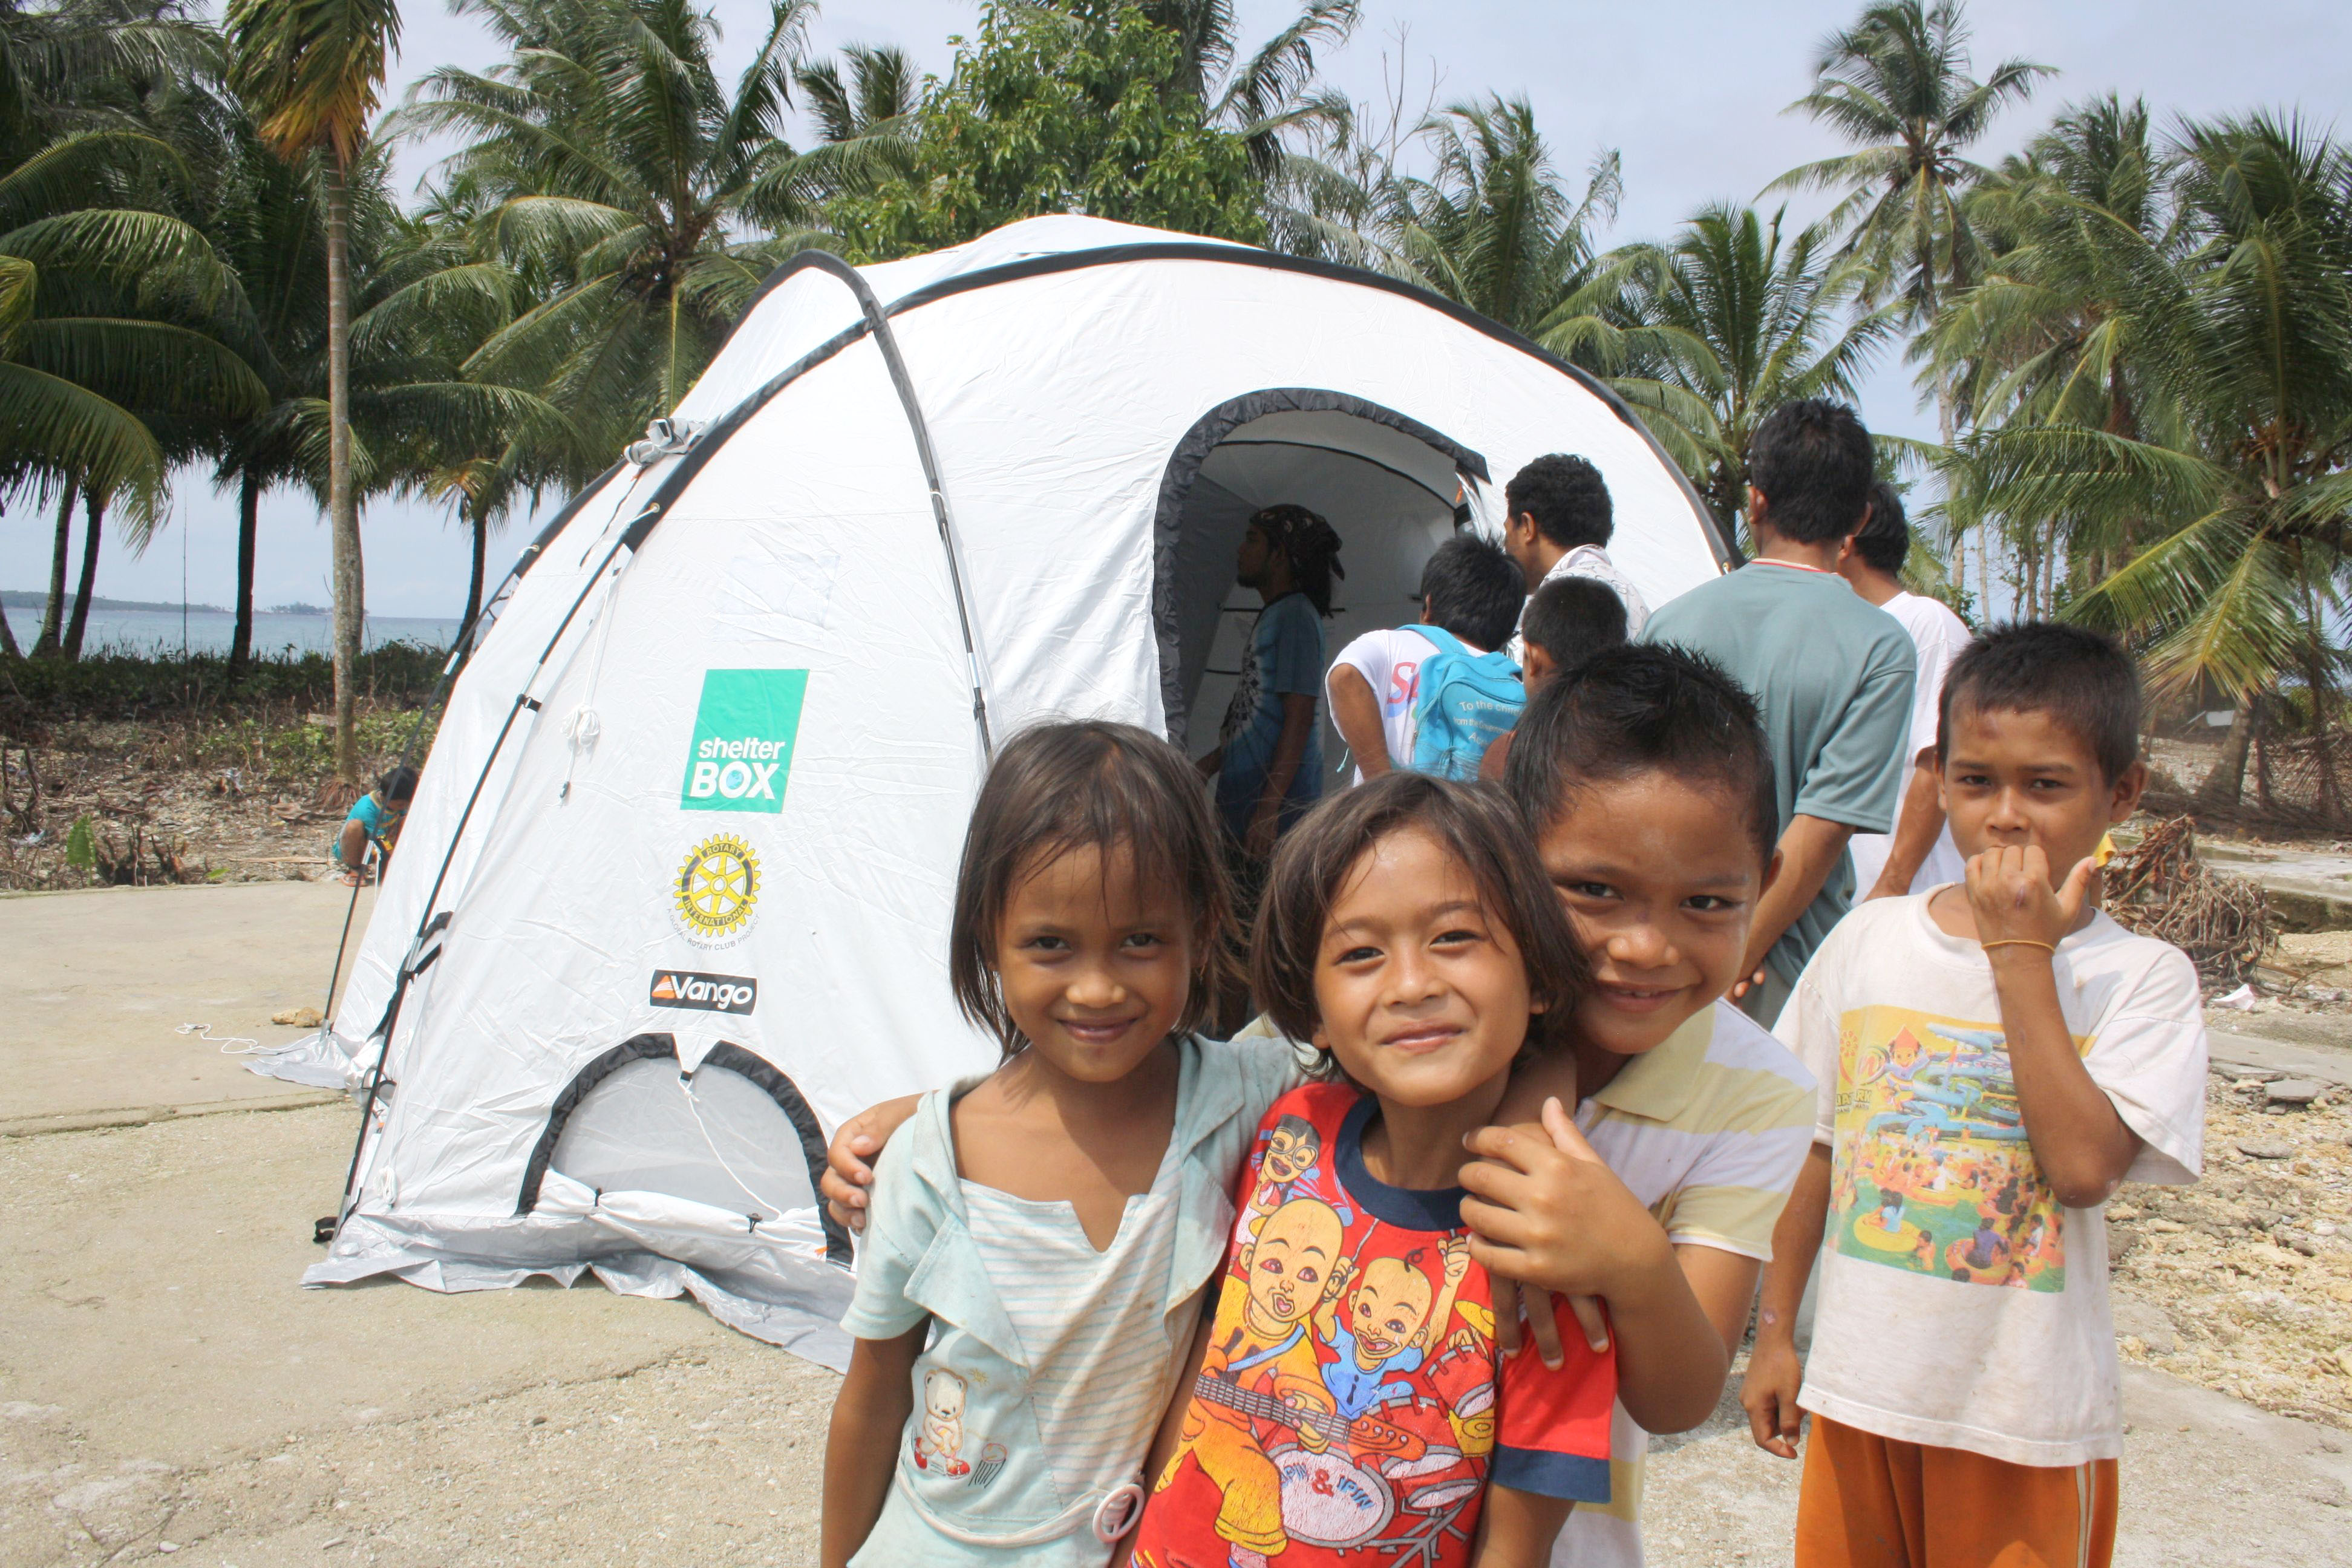 Children on the beach outside tent